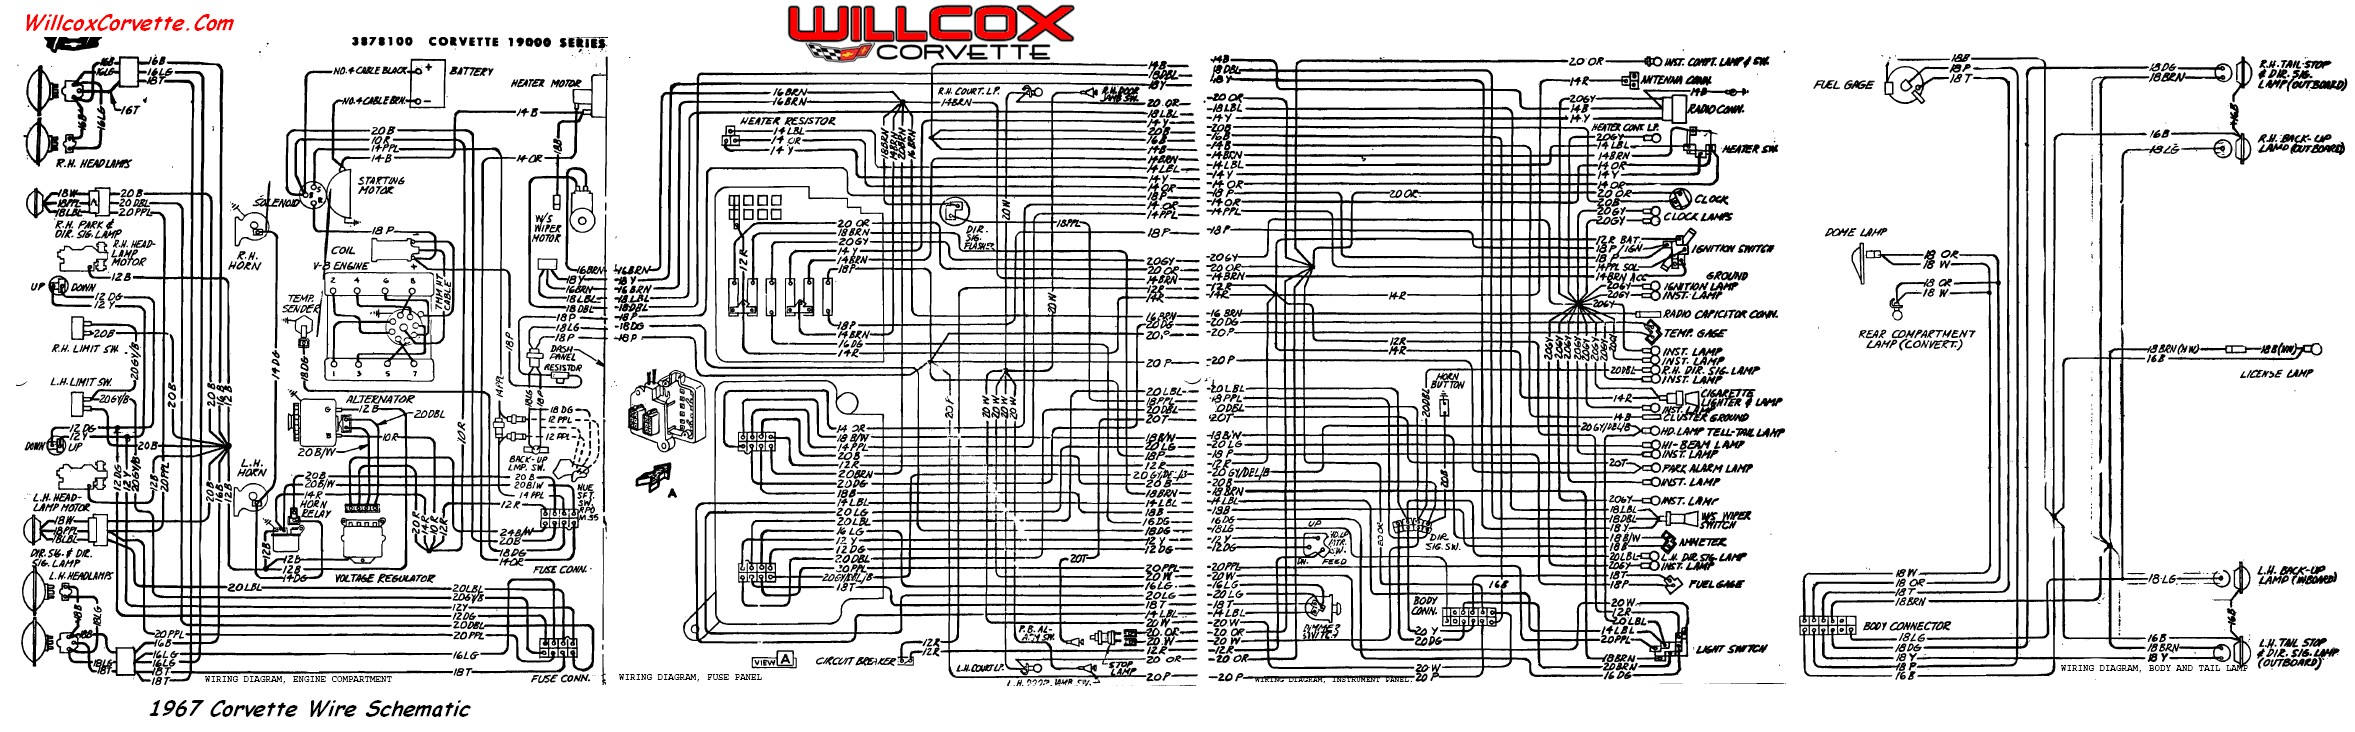 1976 corvette dash wiring diagram 2000 s10 blazer 80 best library diagrams 79